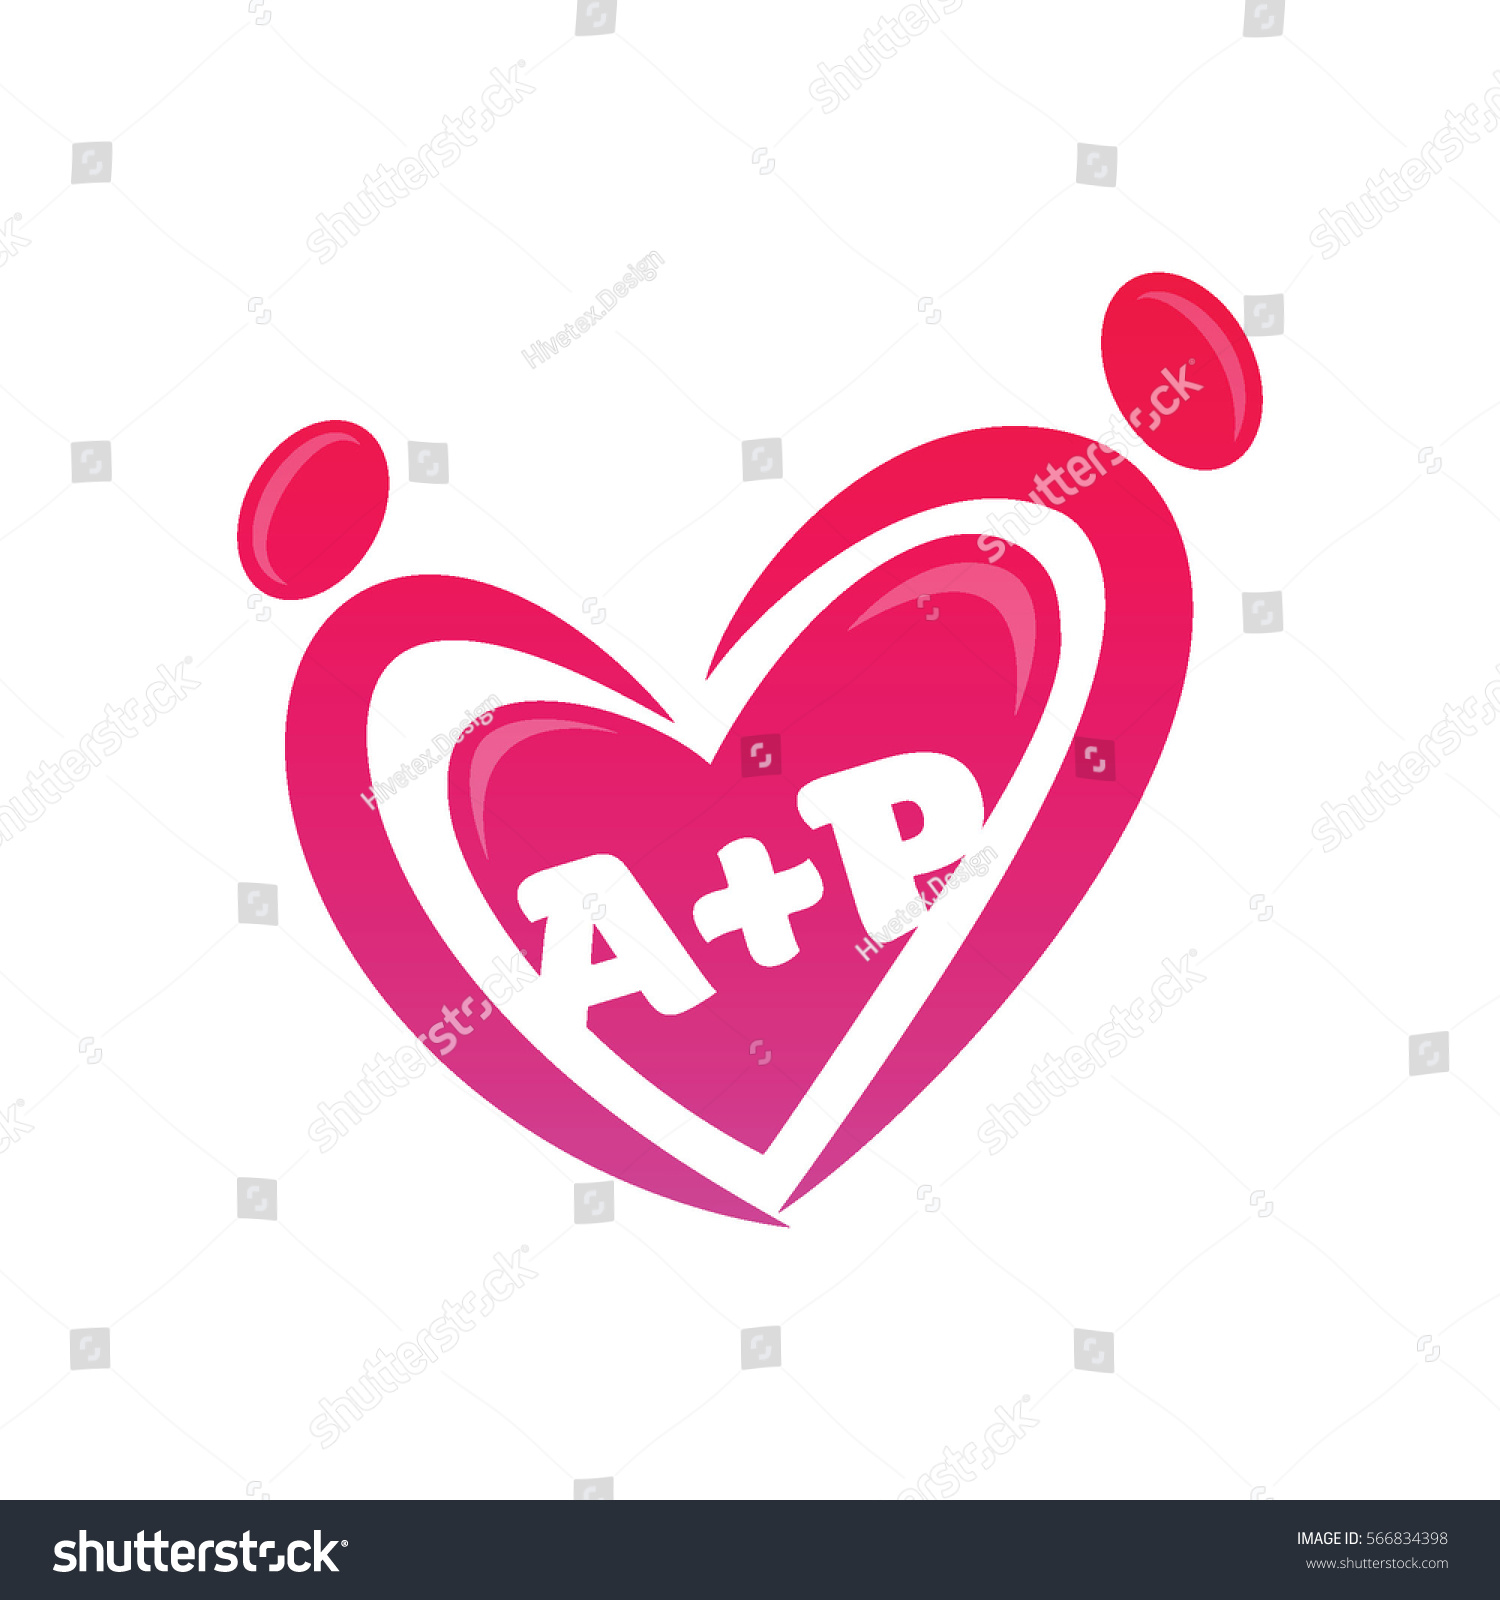 ap logo stock vector royalty free 566834398 shutterstock